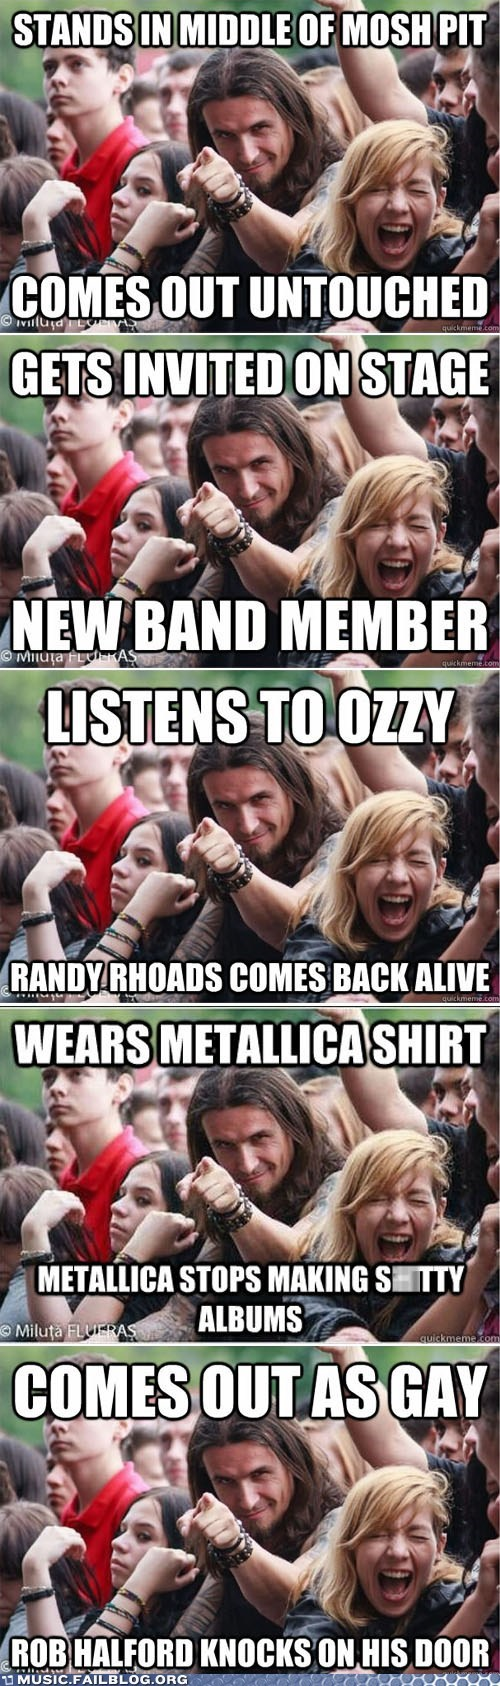 Hall of Fame,meme,metal,metal meme,ridiculously photogenic g,ridiculously photogenic m,usic fails